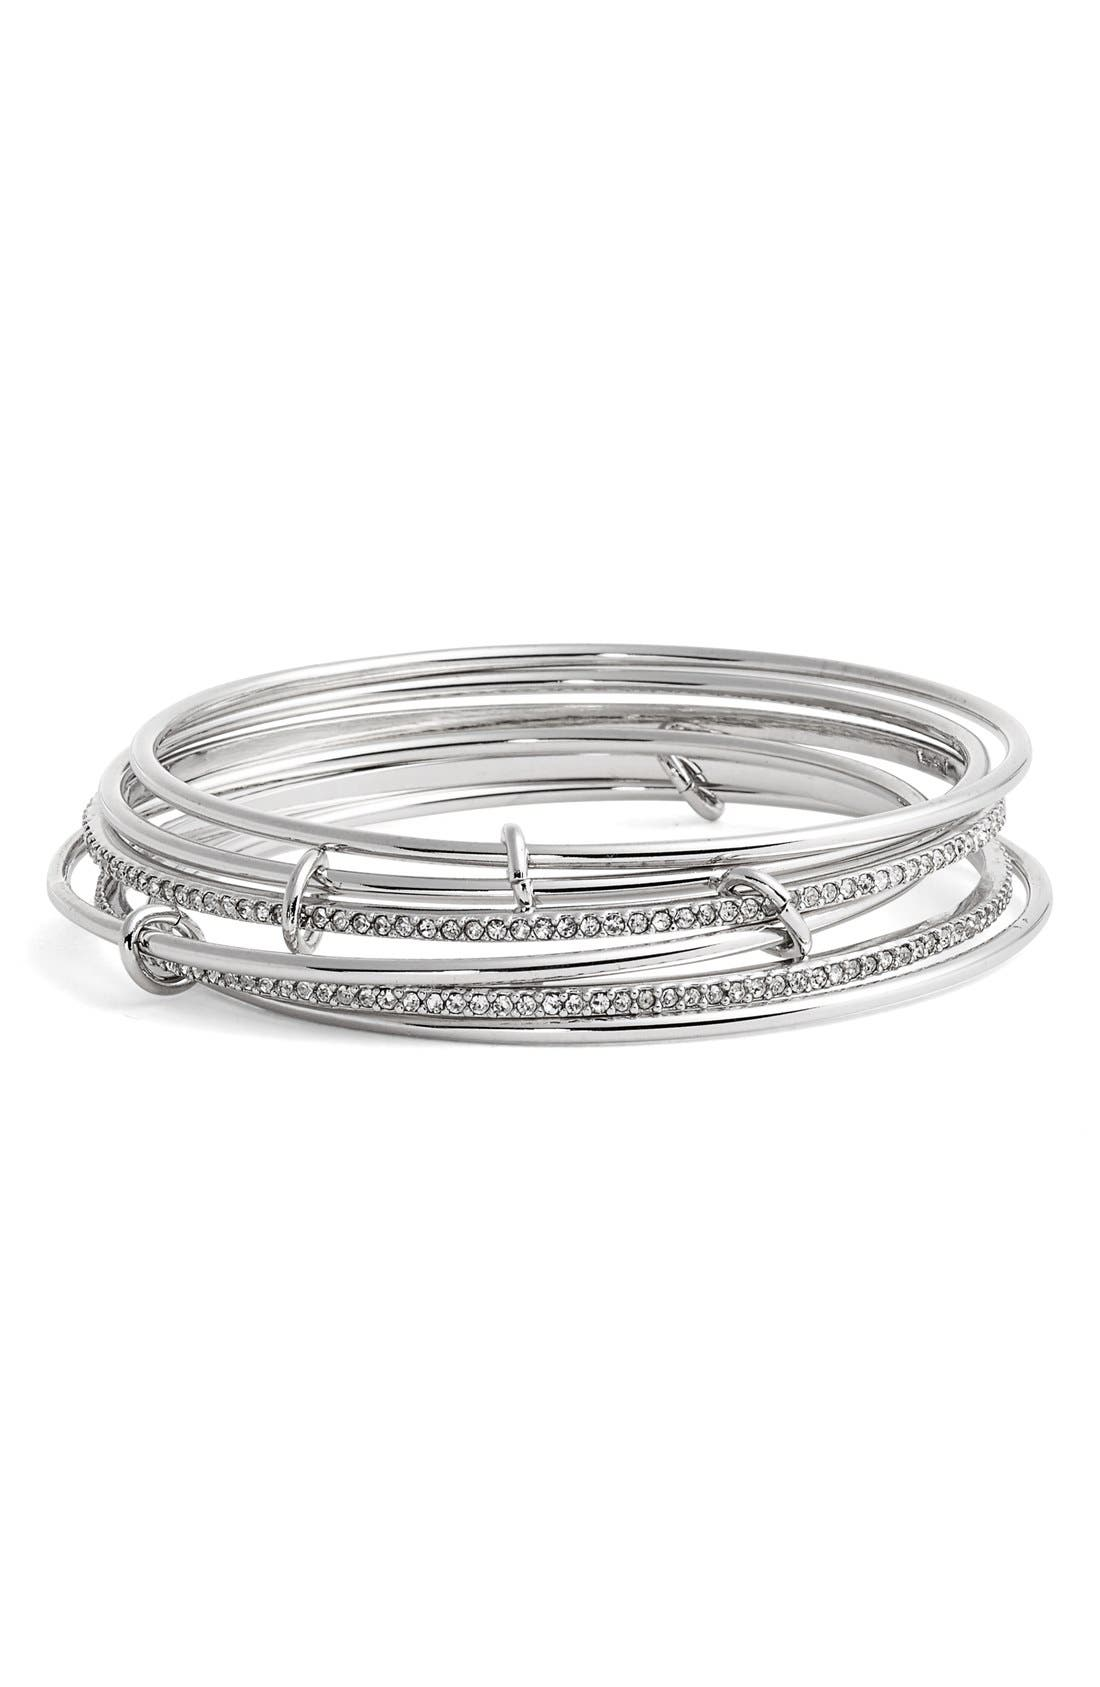 Alternate Image 1 Selected - kate spade new york 'stack attack' bangles (set of 2)